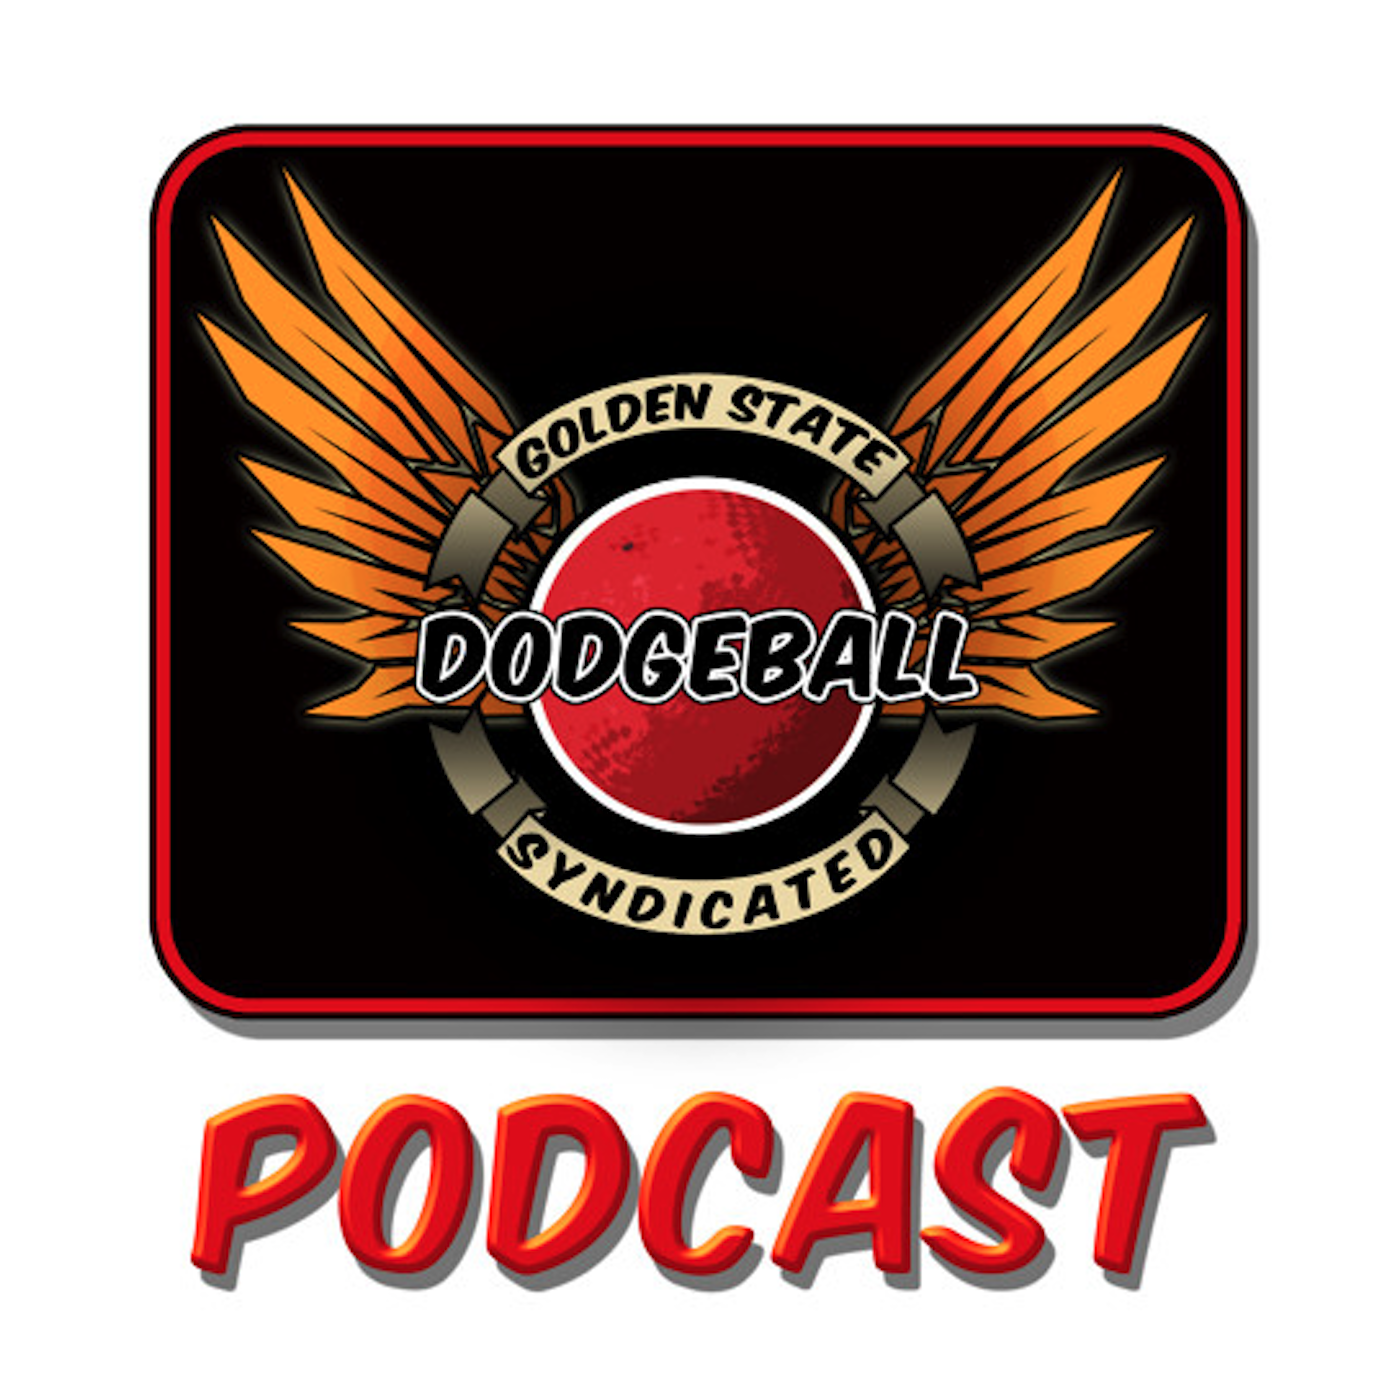 Golden State Dodgeball Syndicated Podcast